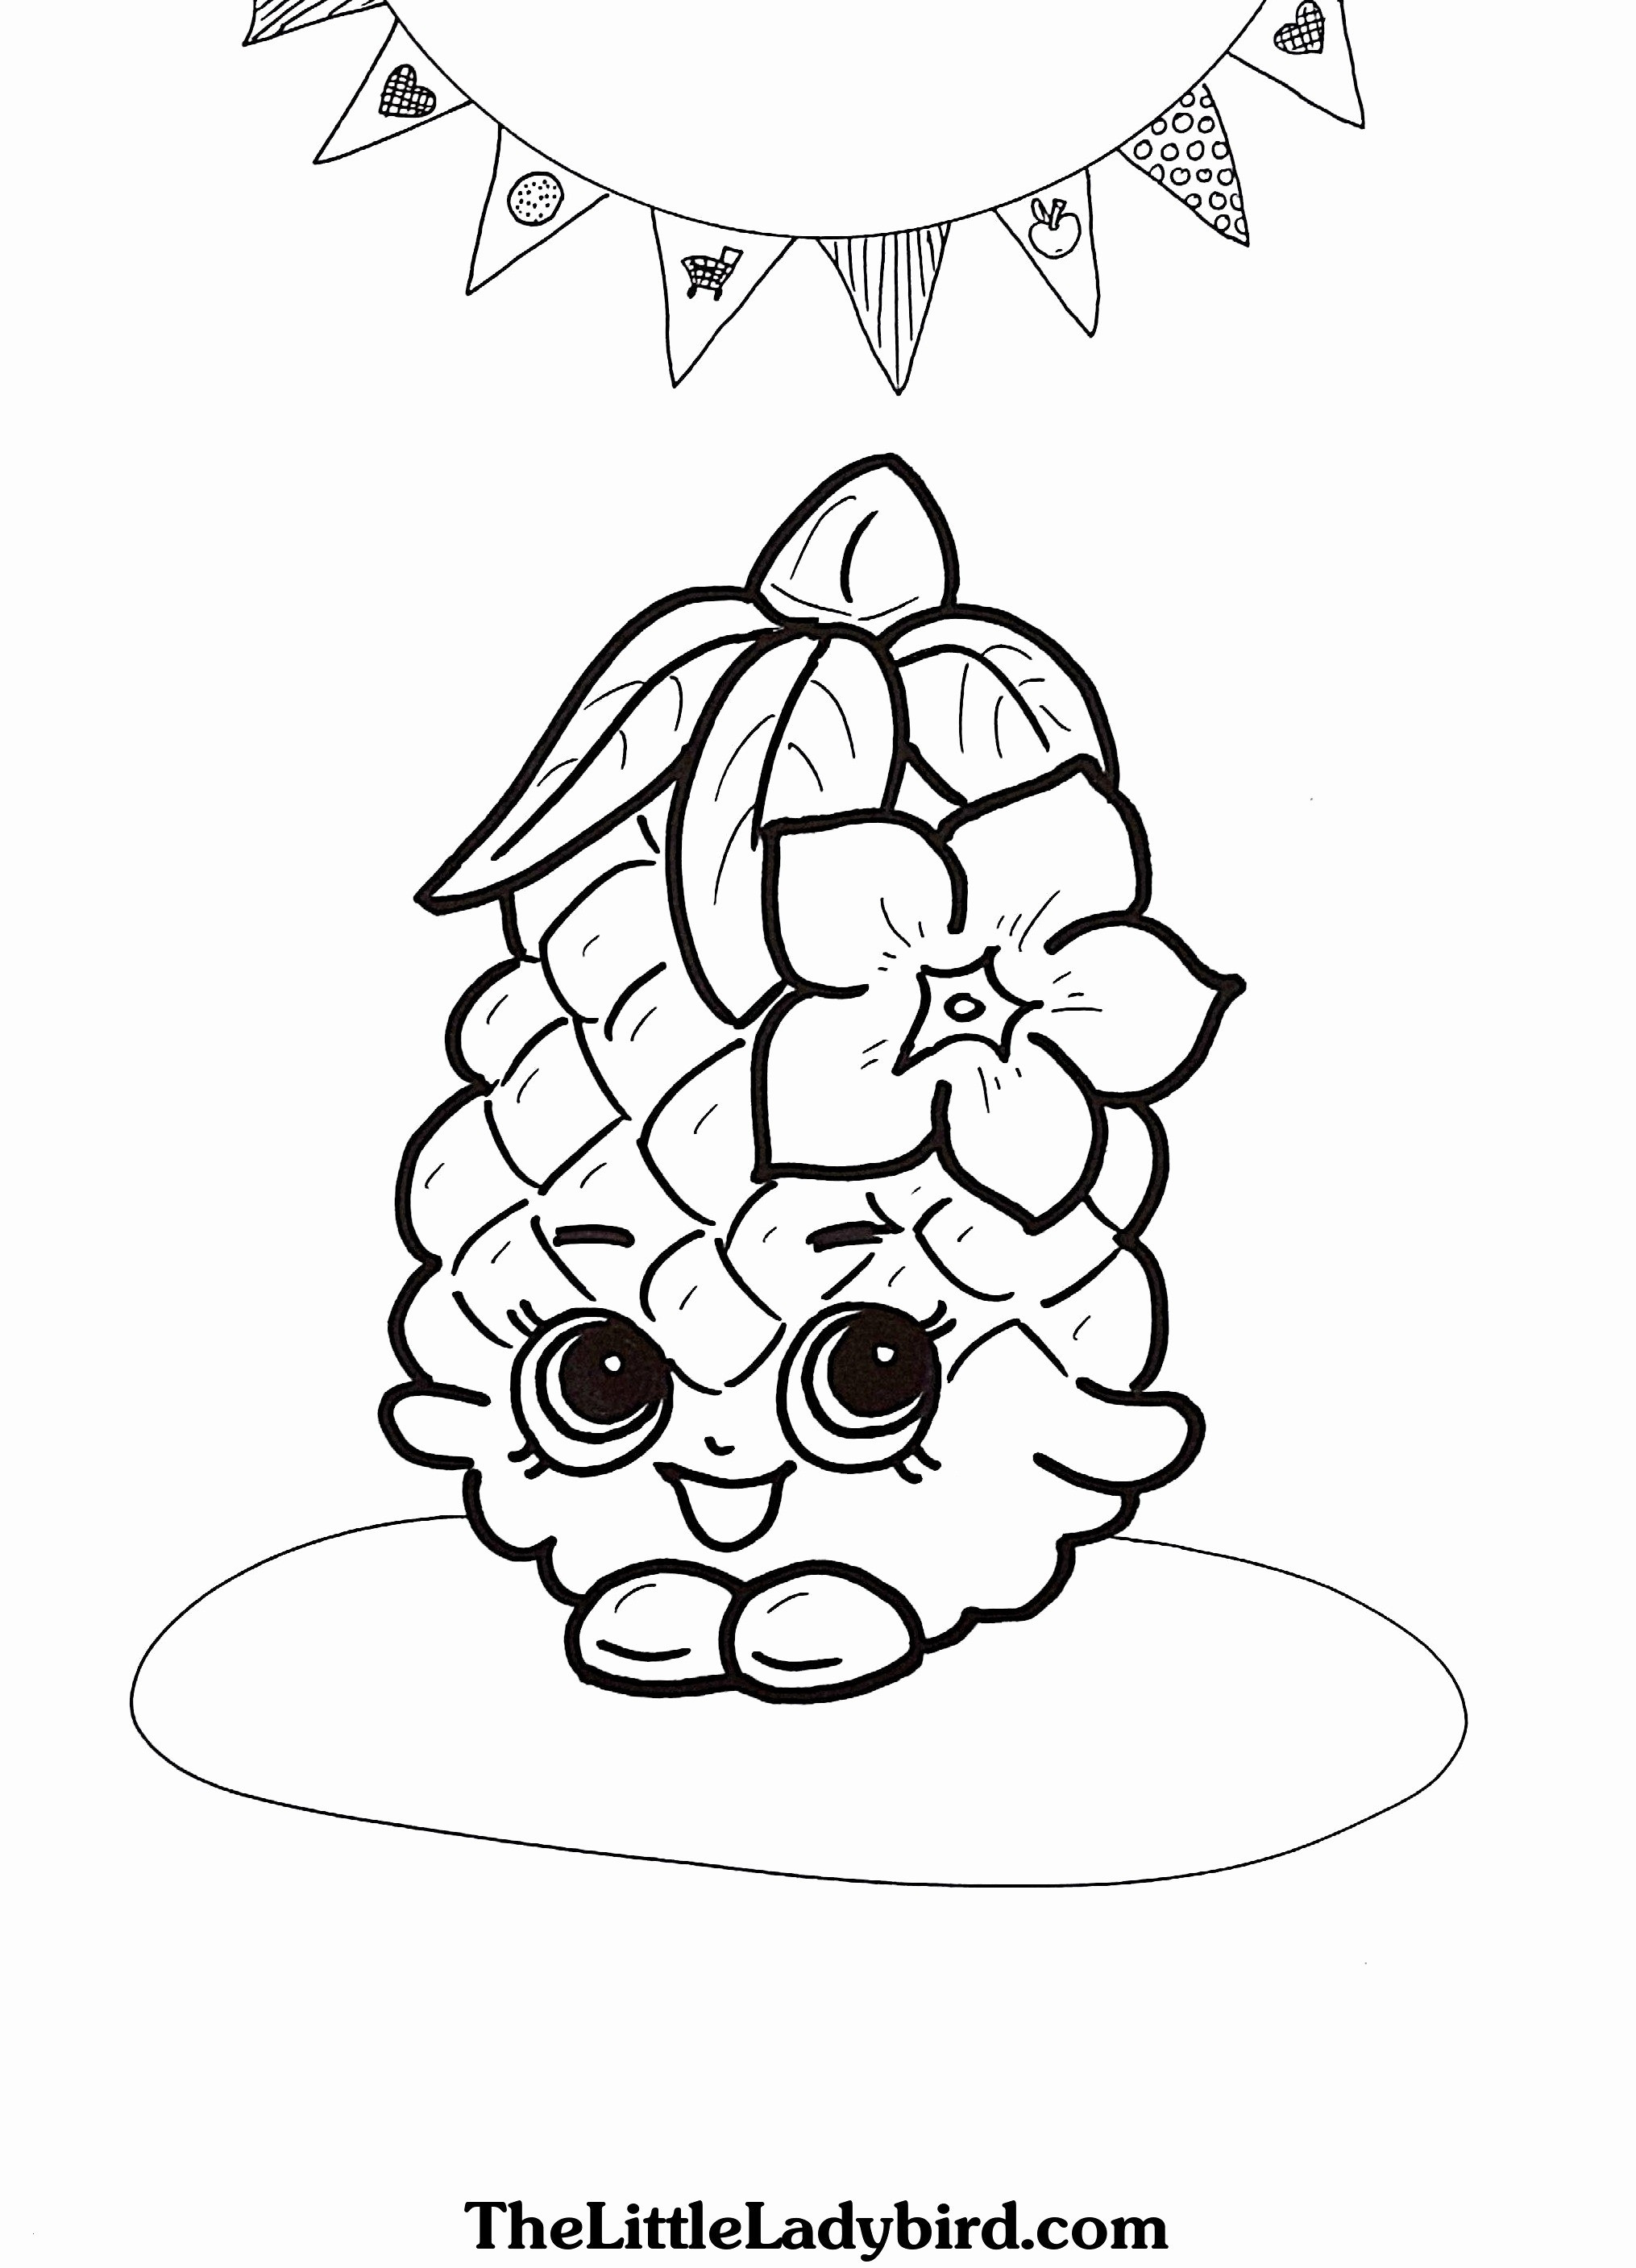 Spongebob Bilder Zum Ausmalen Genial Spongebob Squarepants Coloring Pages Luxury Cool Coloring Page Luxus Stock